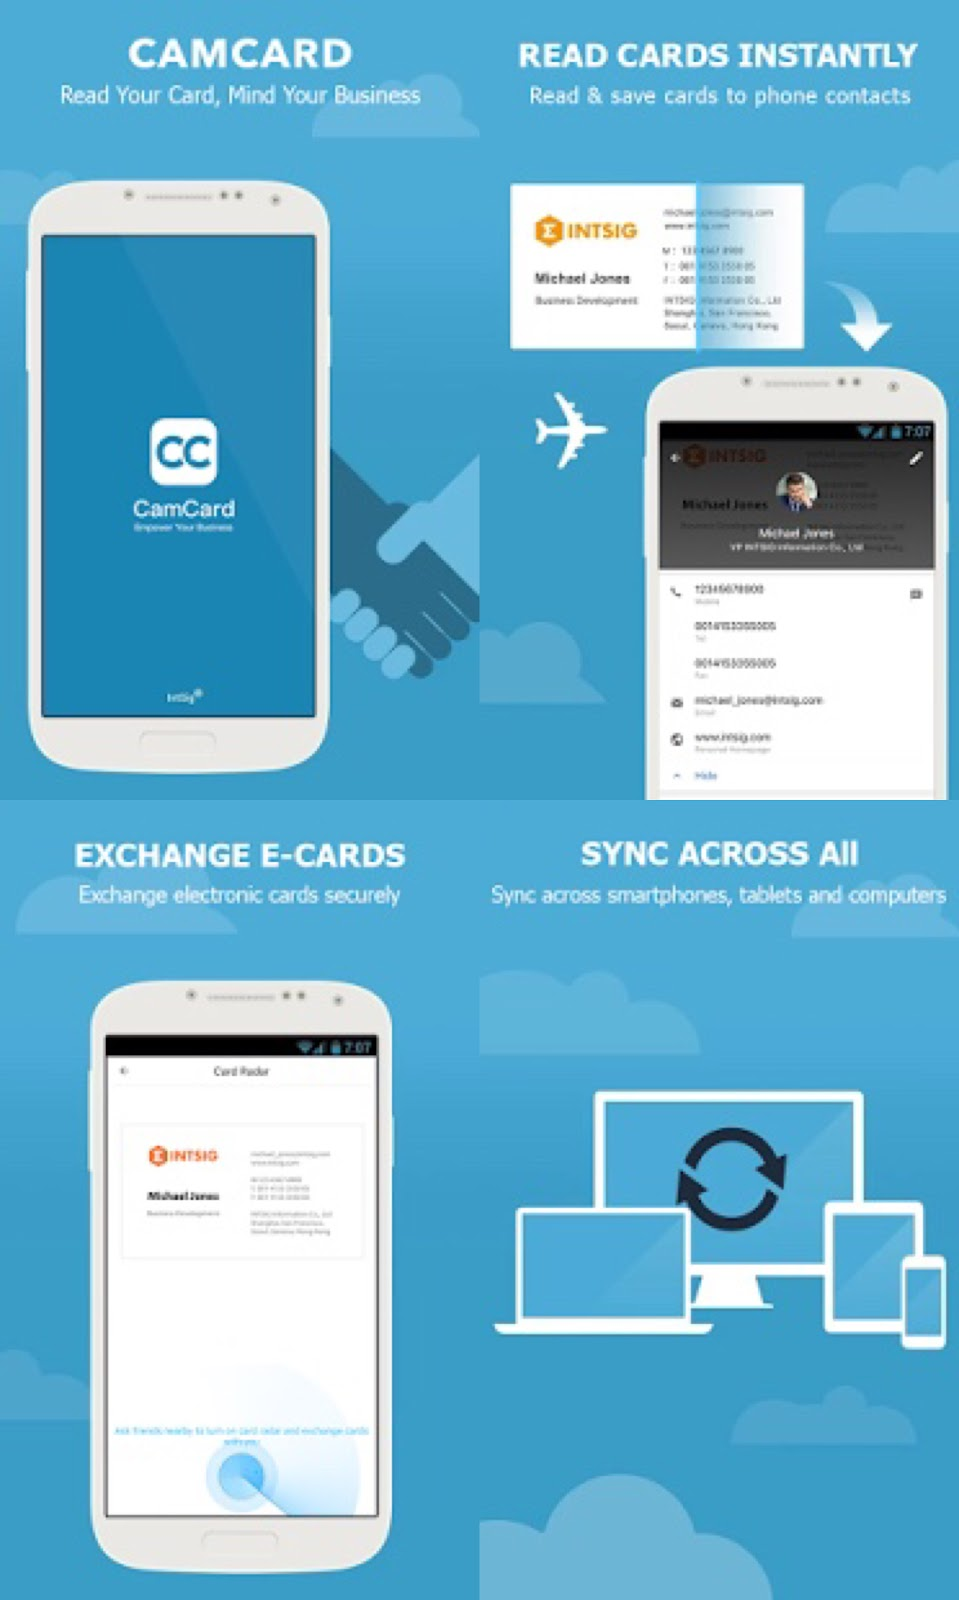 Camcard business card reader v738 apk mobileraid reheart Images